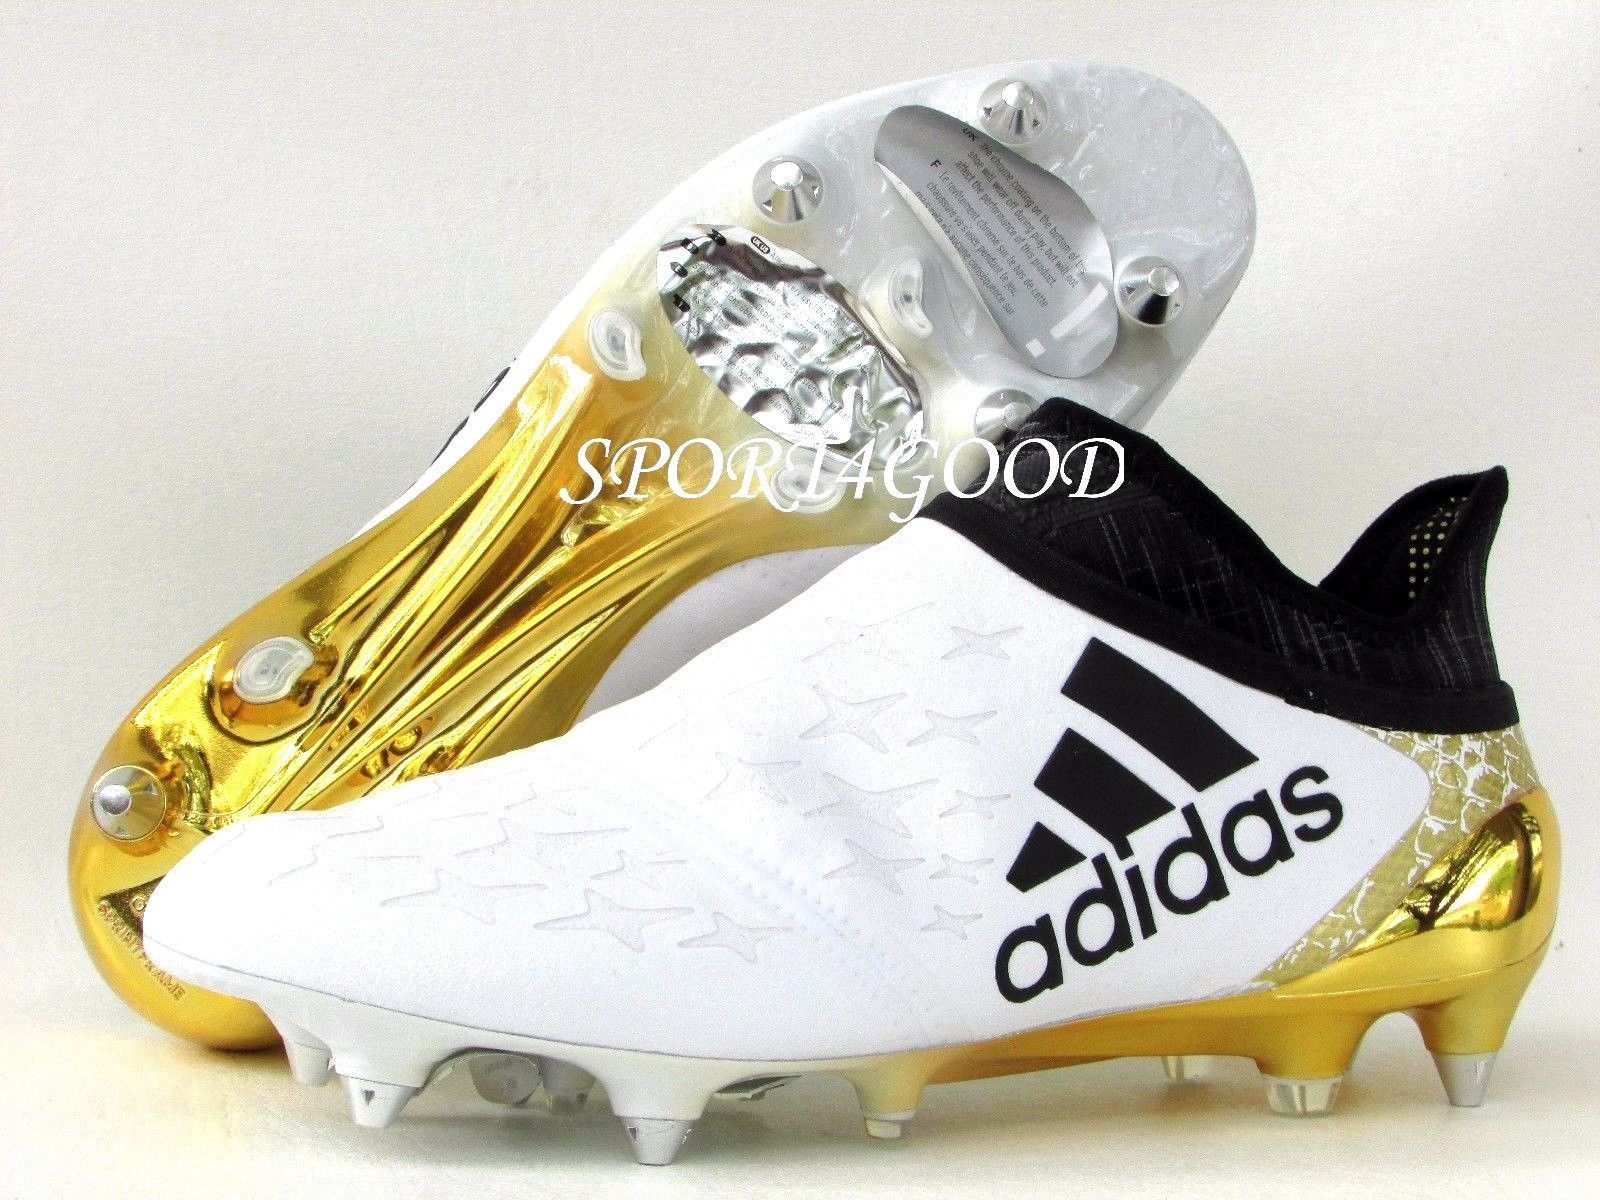 Adidas Soccer Cleats X 16 Purechaos Sg Mens Sz 7 5 White Black Gold Aq4280 Soccer Cleats Adidas Adidas Soccer Football Boots